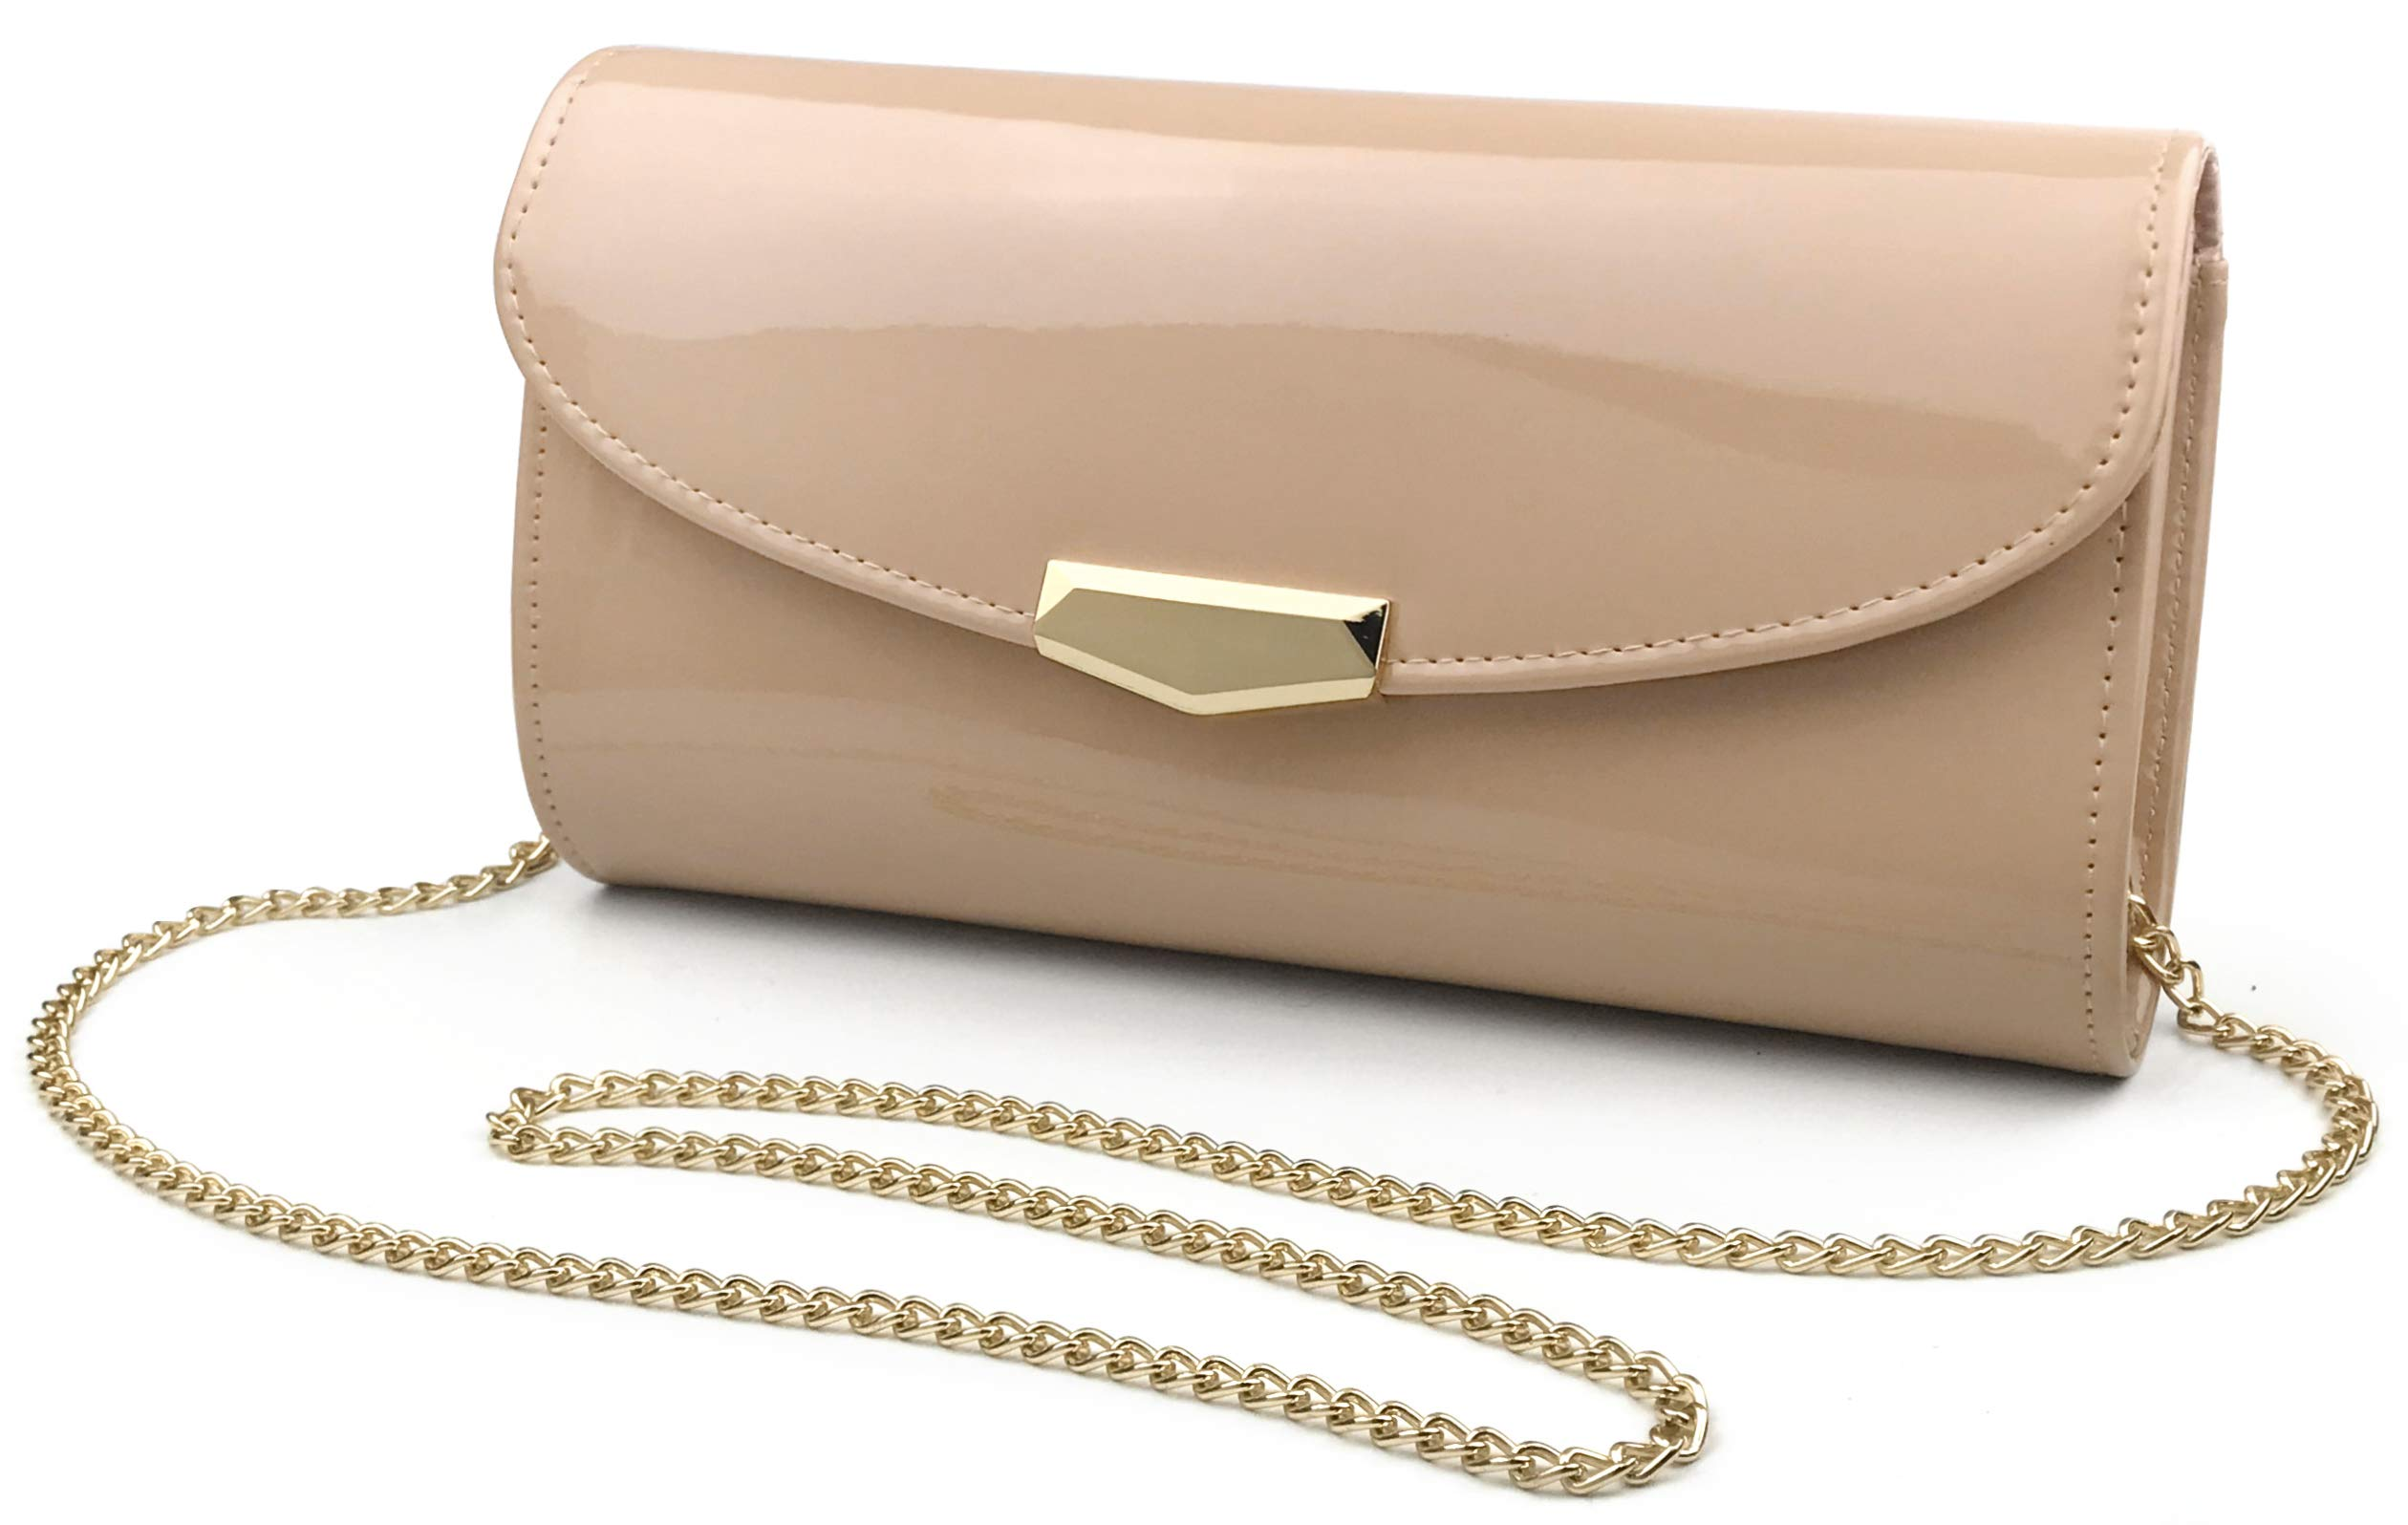 Women Glossy Evening Clutch Faux Patent Leather Chain Shoulder Bag Large Capacity Purse (Nude)